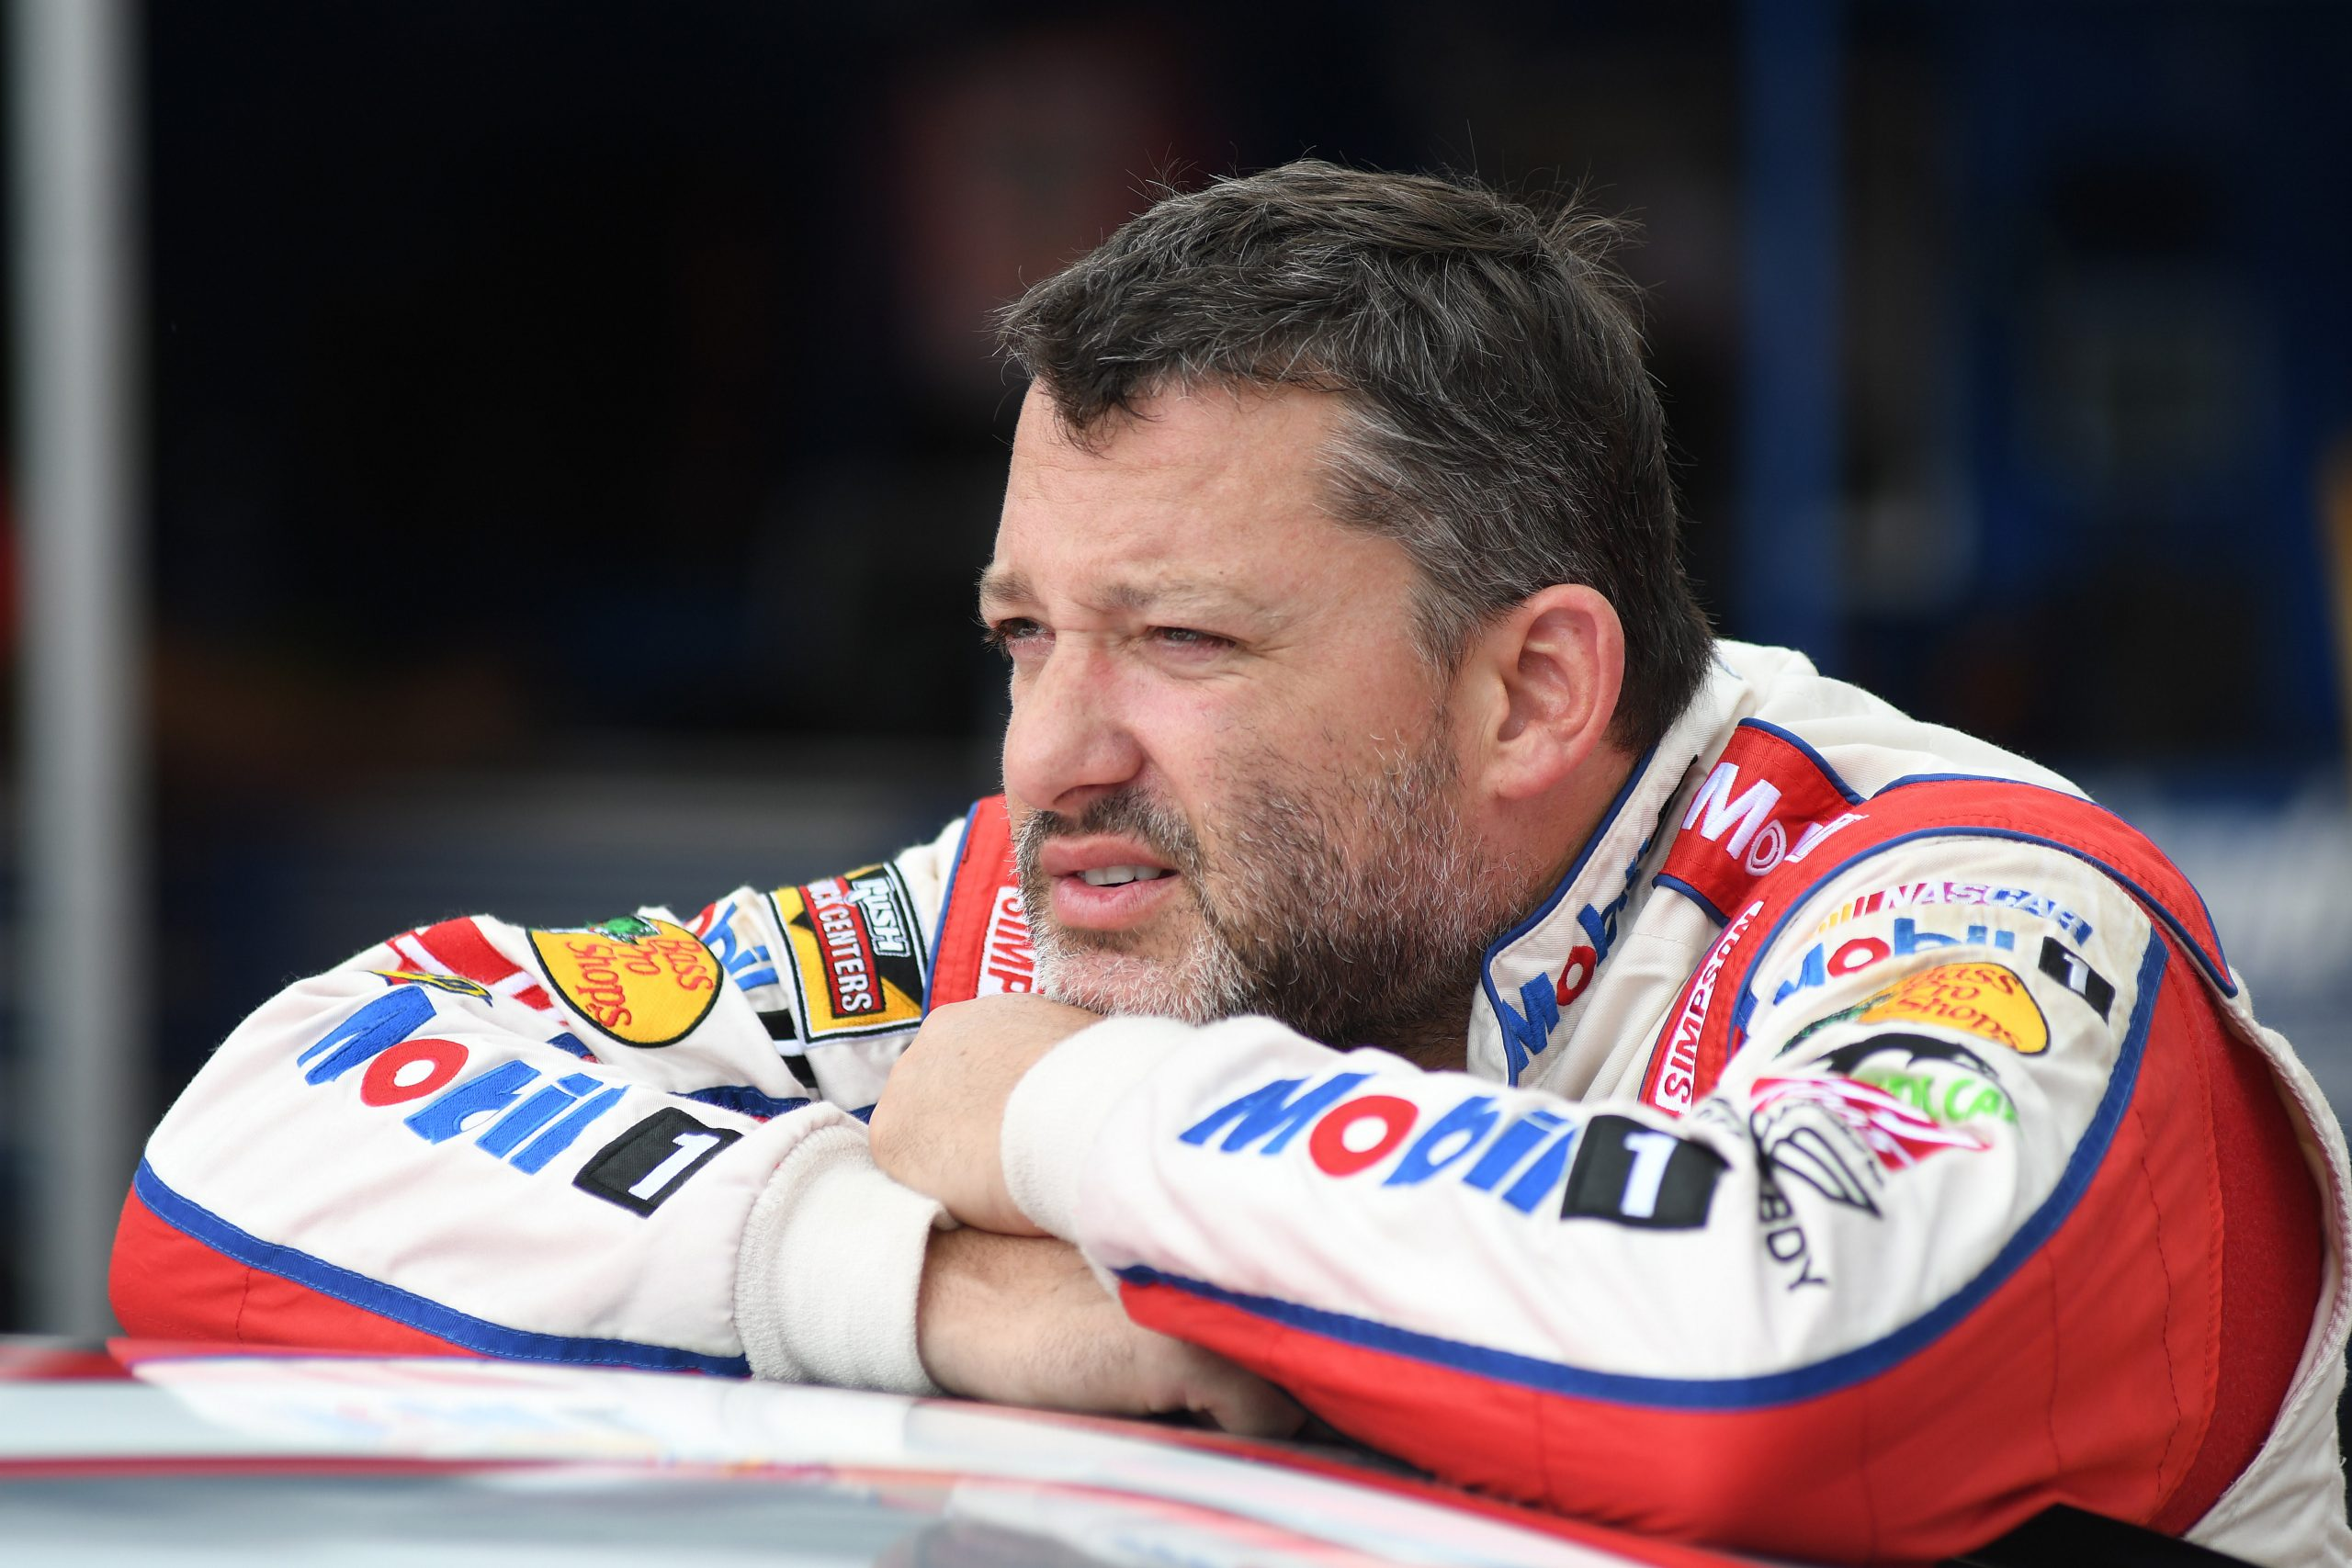 Tony Stewart's Superstar Racing Experience will ban Confederate flag